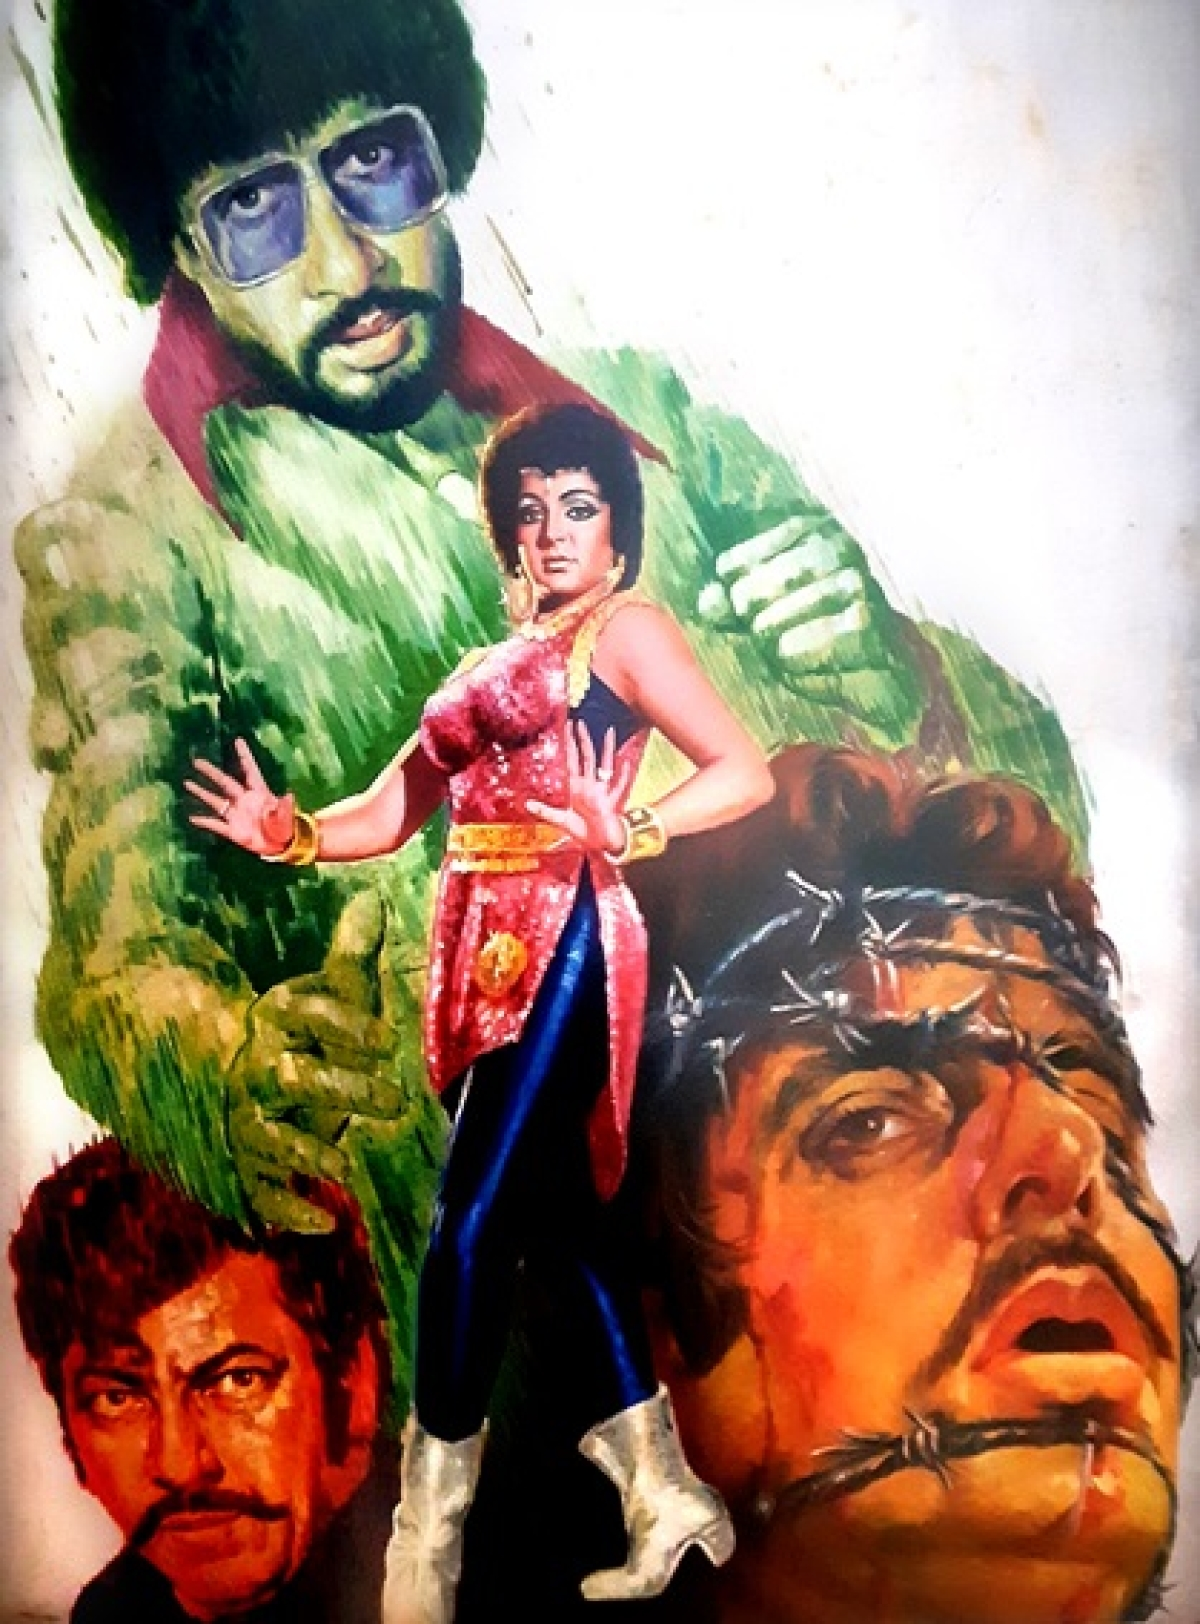 CinemaScope: Revisiting the era of hand-painted movie posters and hoardings